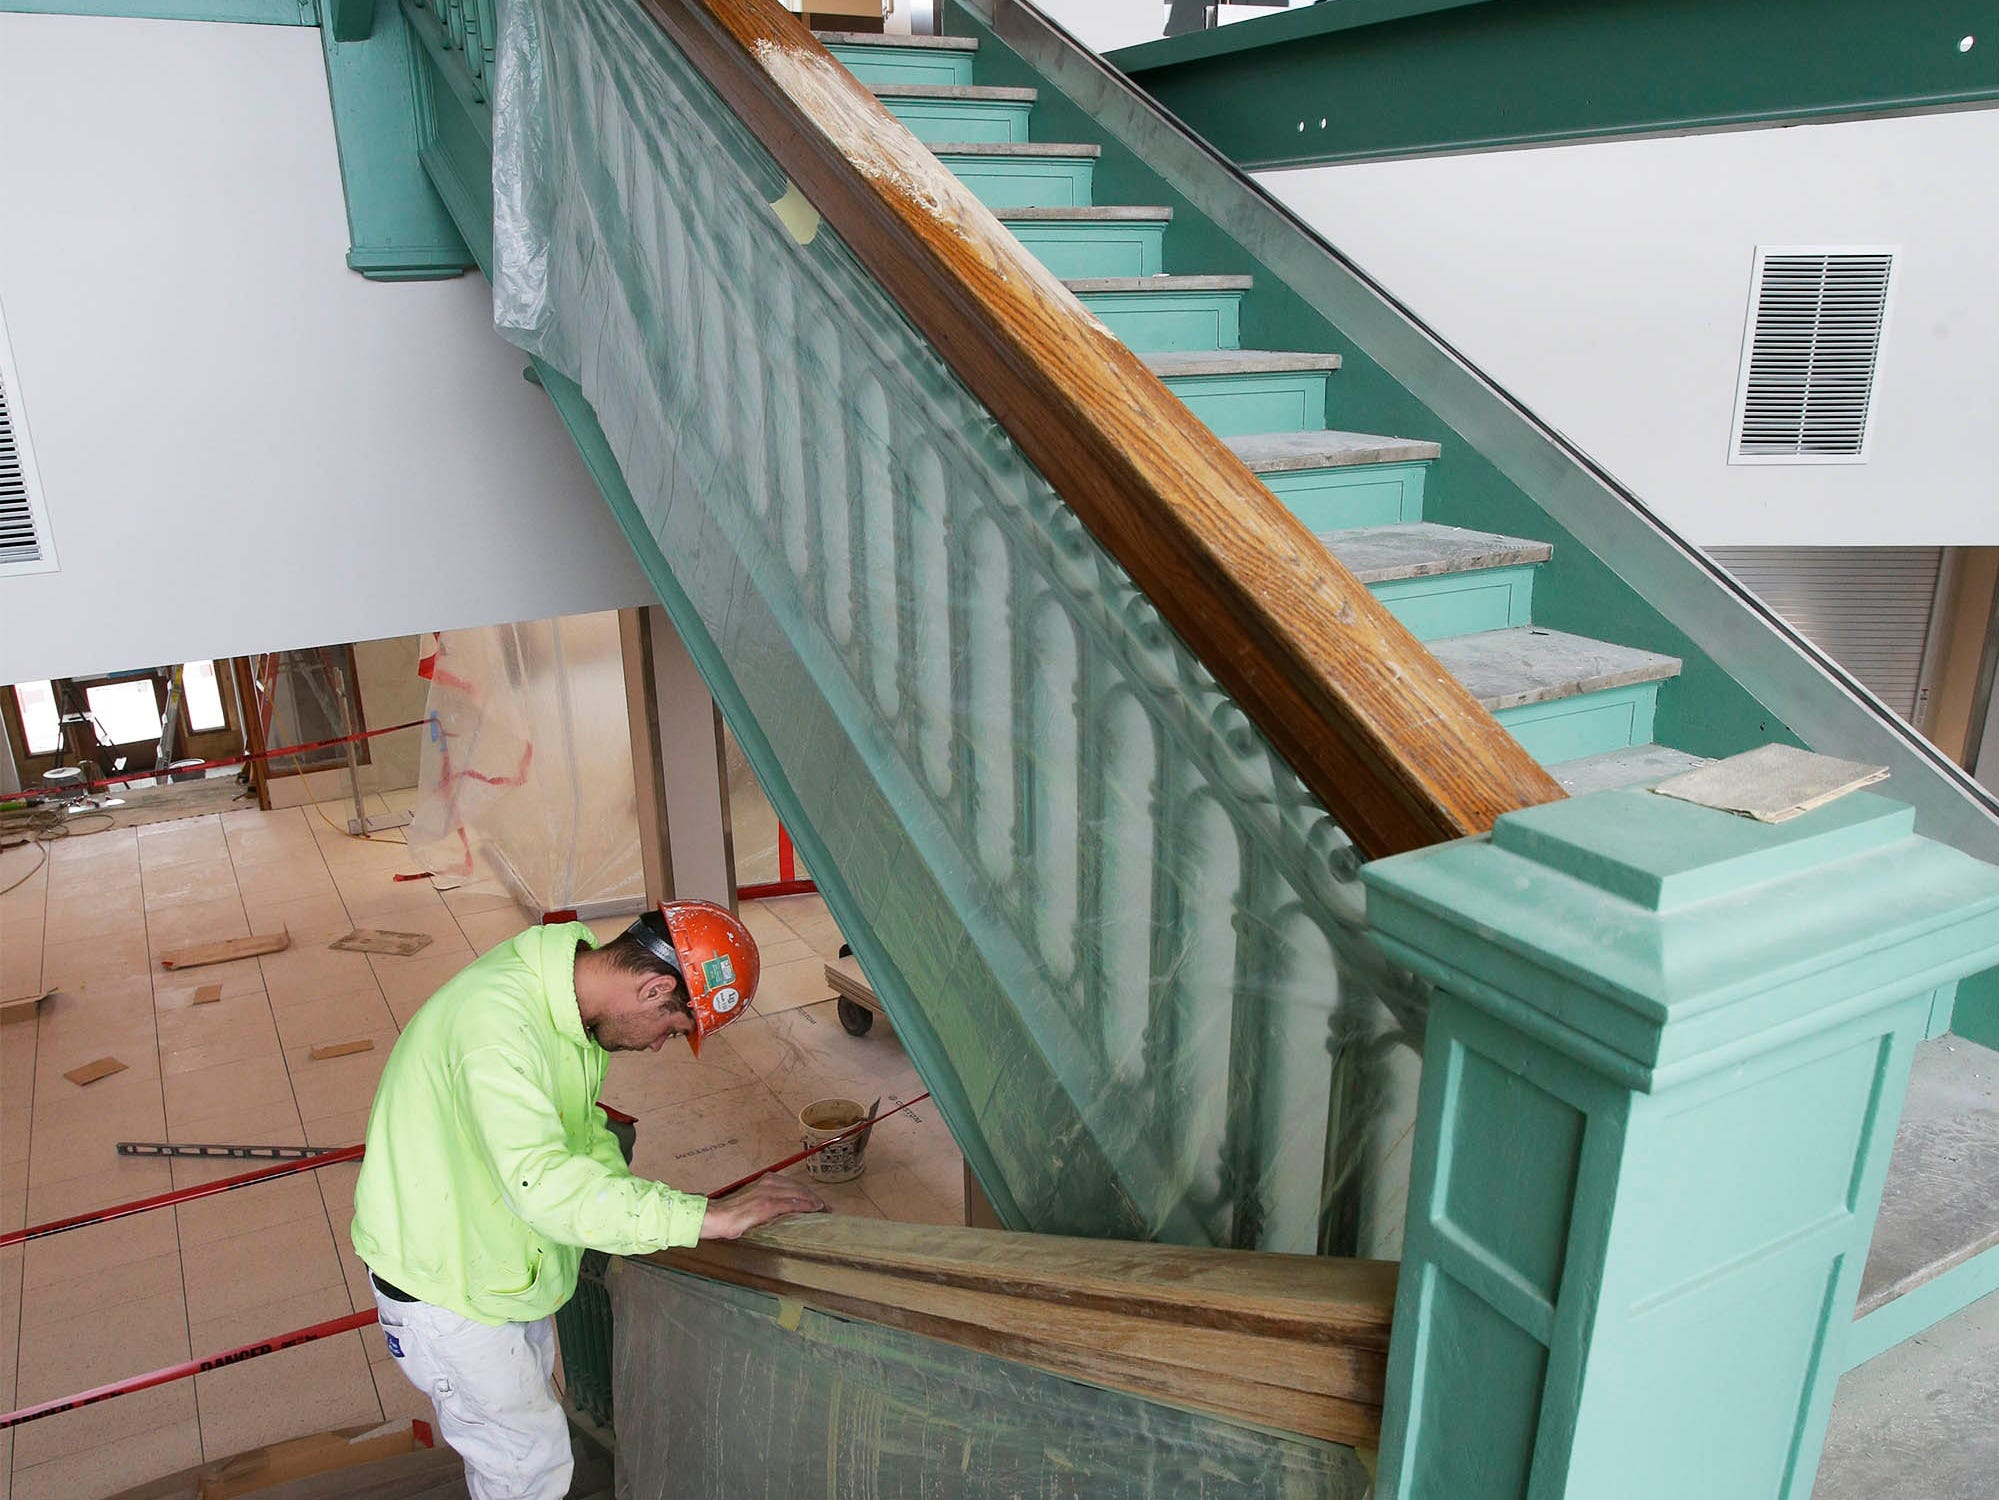 Sheboygan City Hall's ornate main staircase are being refinished, Tuesday, May 7, 2019, in Sheboygan, Wis.